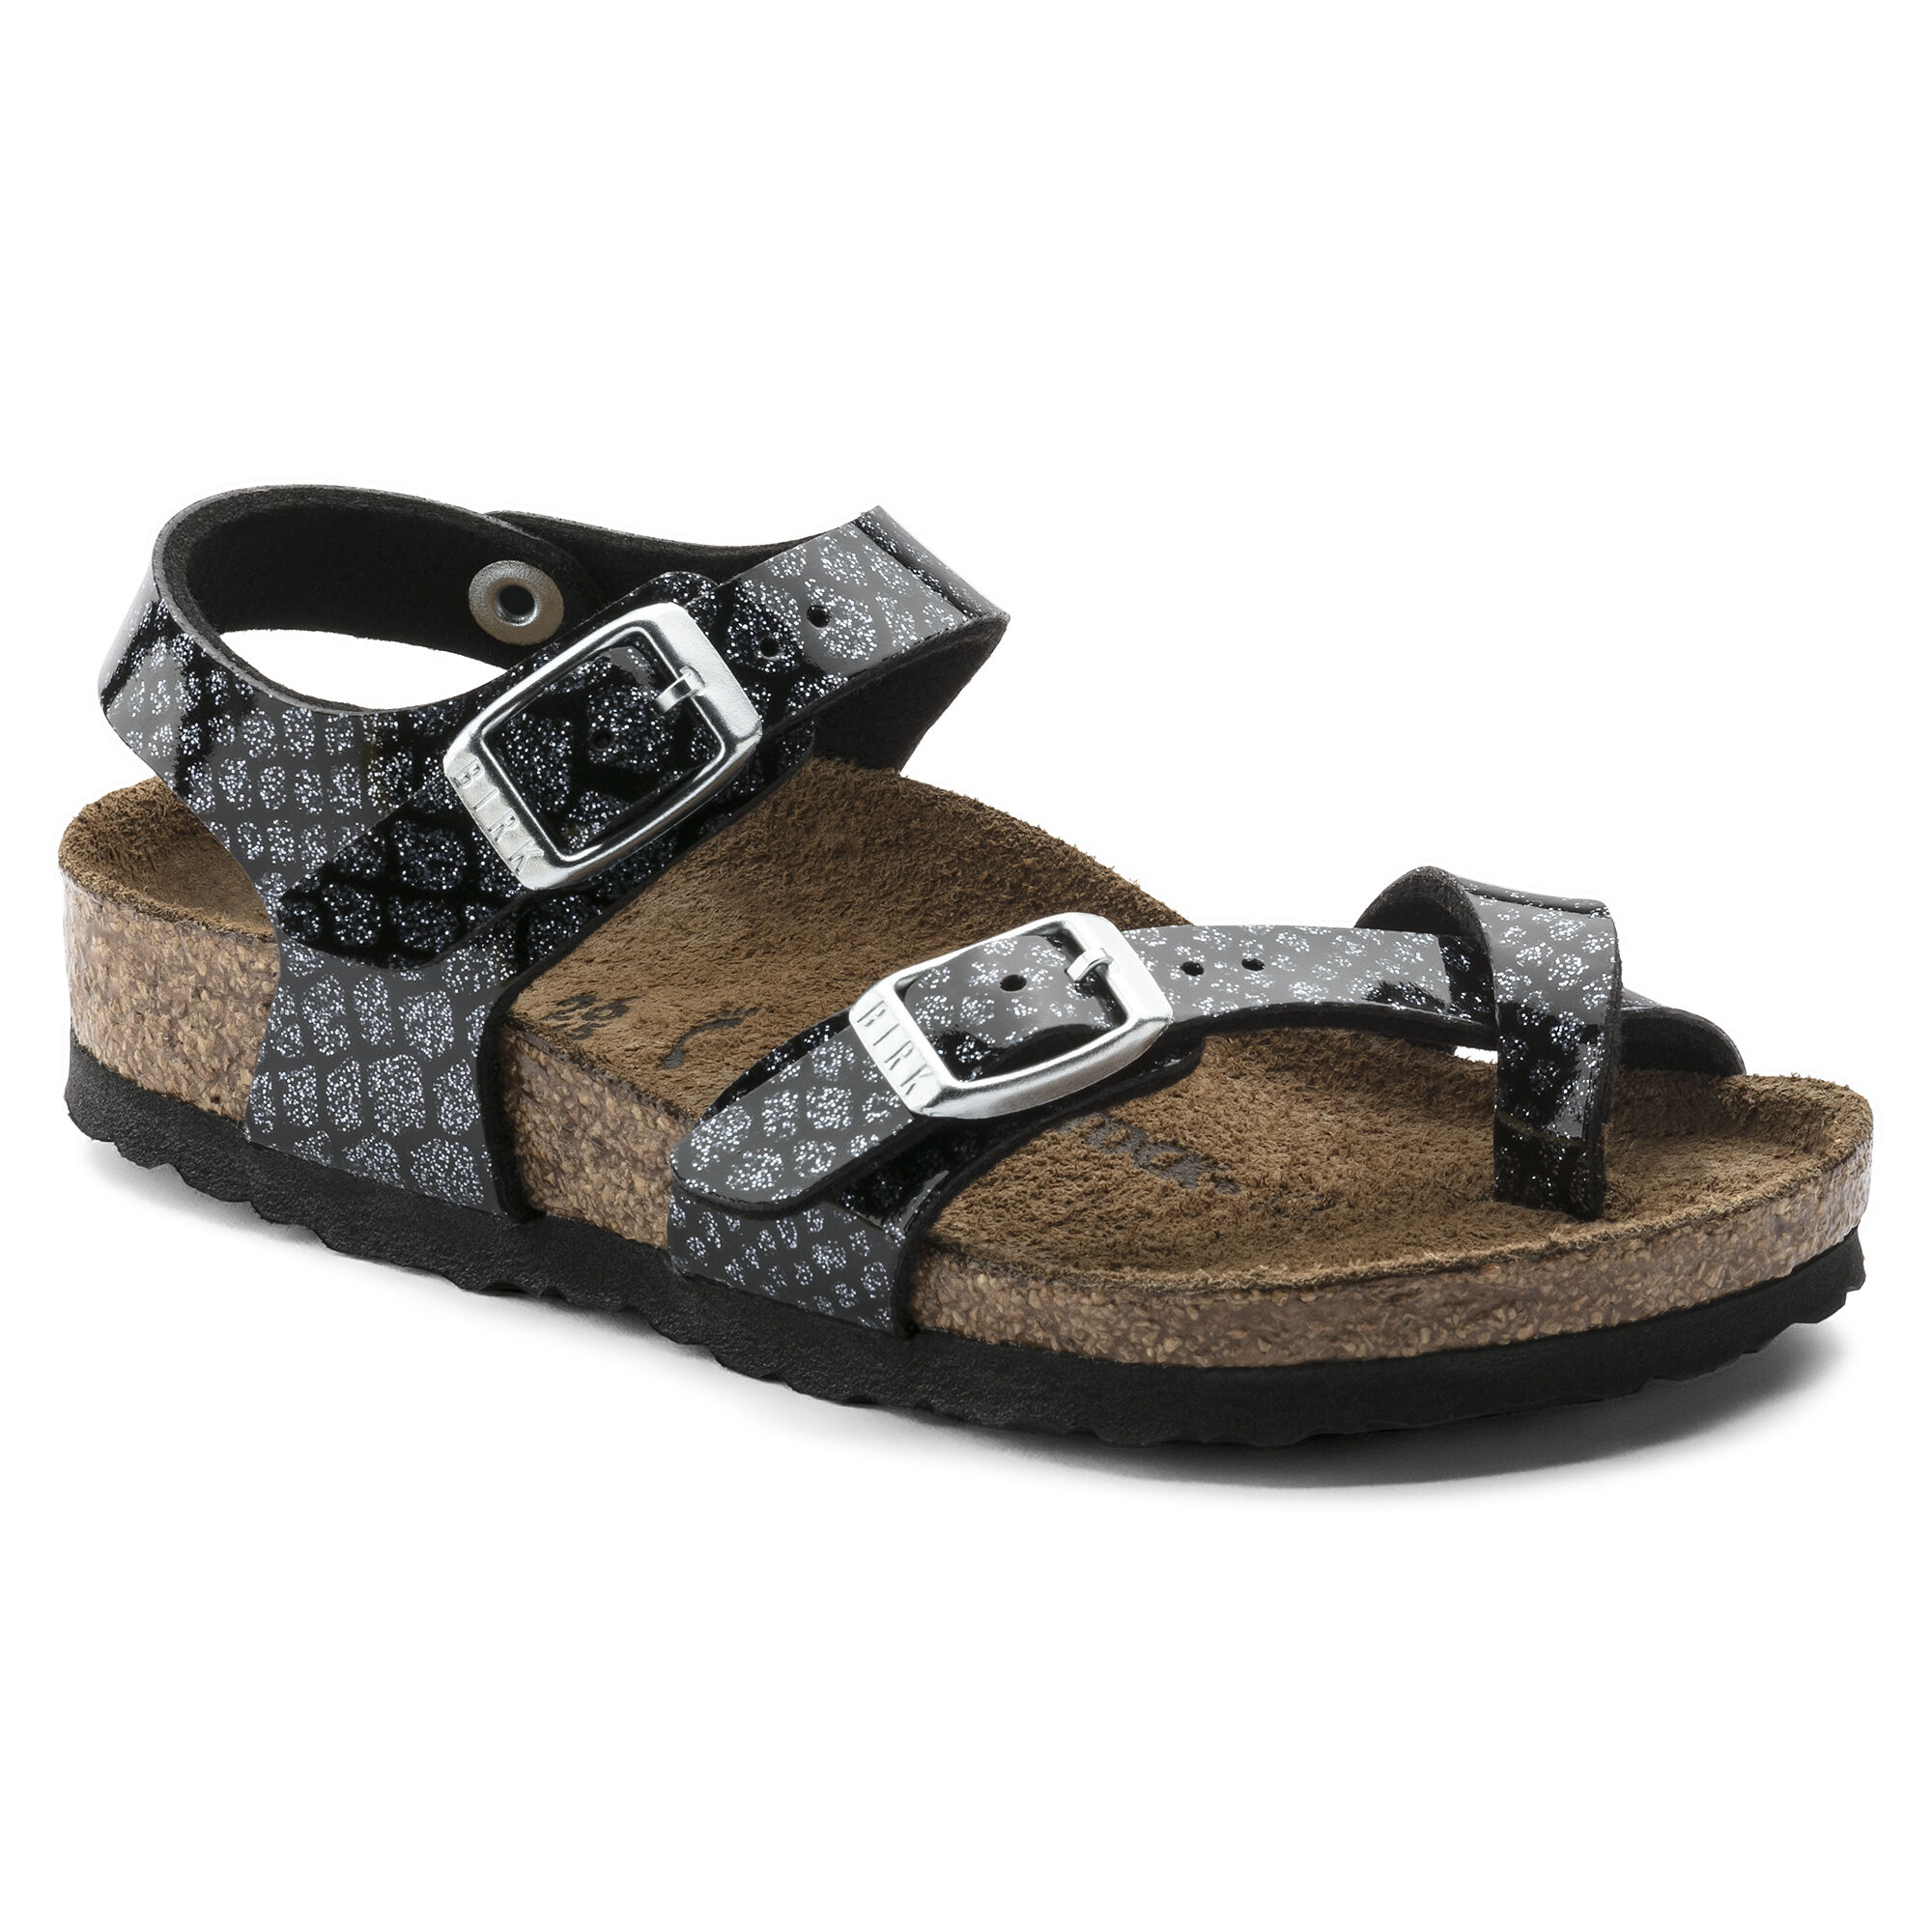 Birkenstock Women's Arizona Magic Snake Birko-Flor Narrow Fit Sandal Black-Black-4.5 Size 4.5 w7KgB